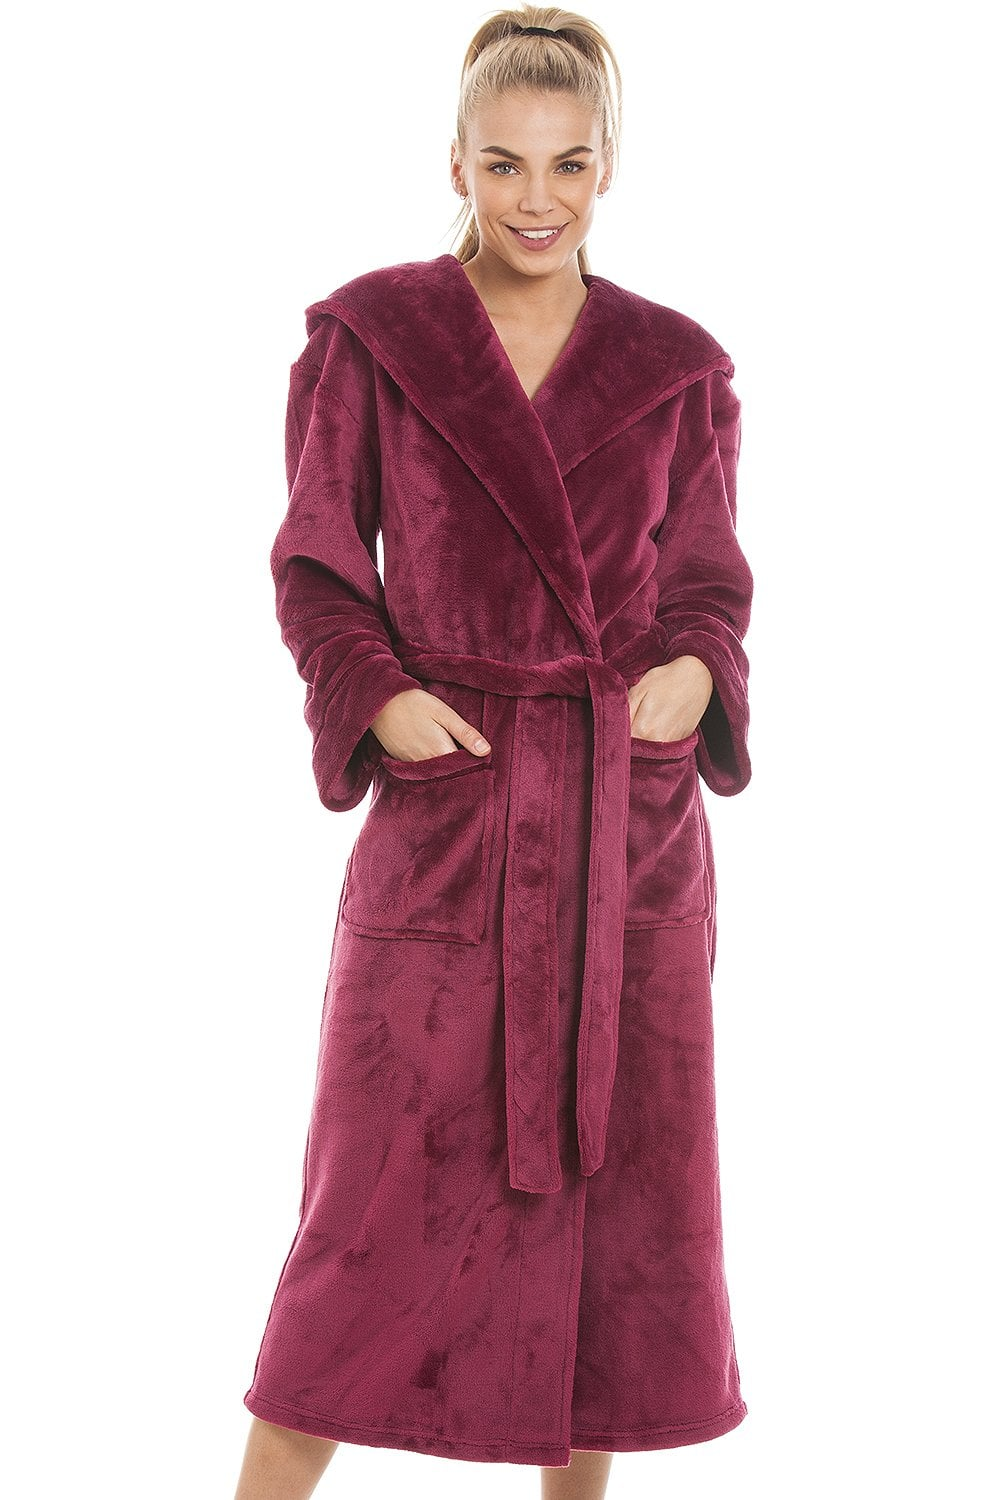 7c63656330 Camille Super Soft Fleece Ruby Red Dressing gown